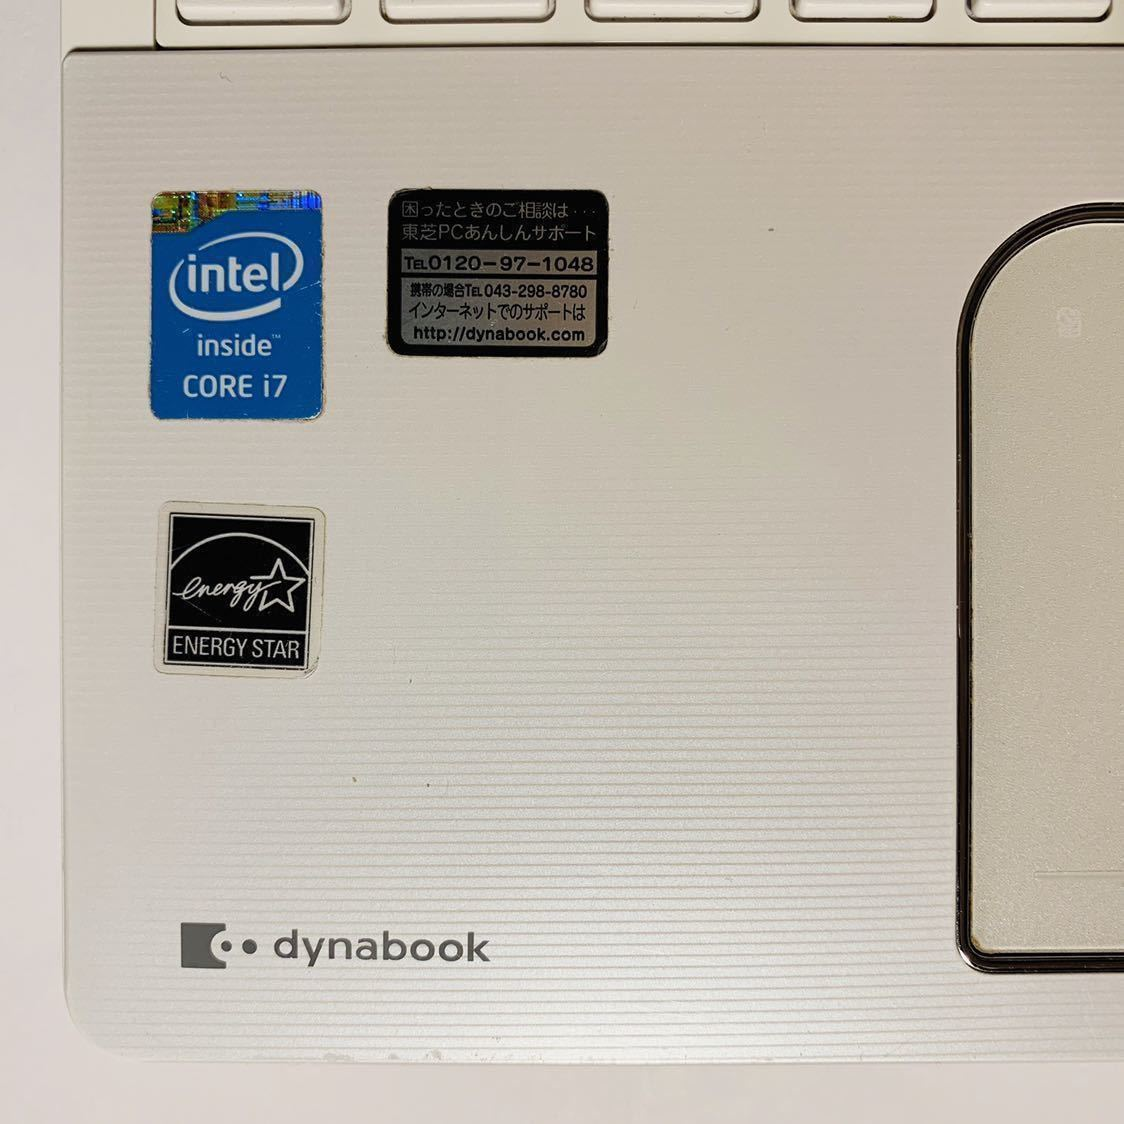 ◆東芝 Core i7 新品SSD500GB メモリ16GB Windows 10◆dynabook T554/76LWS◆_画像3